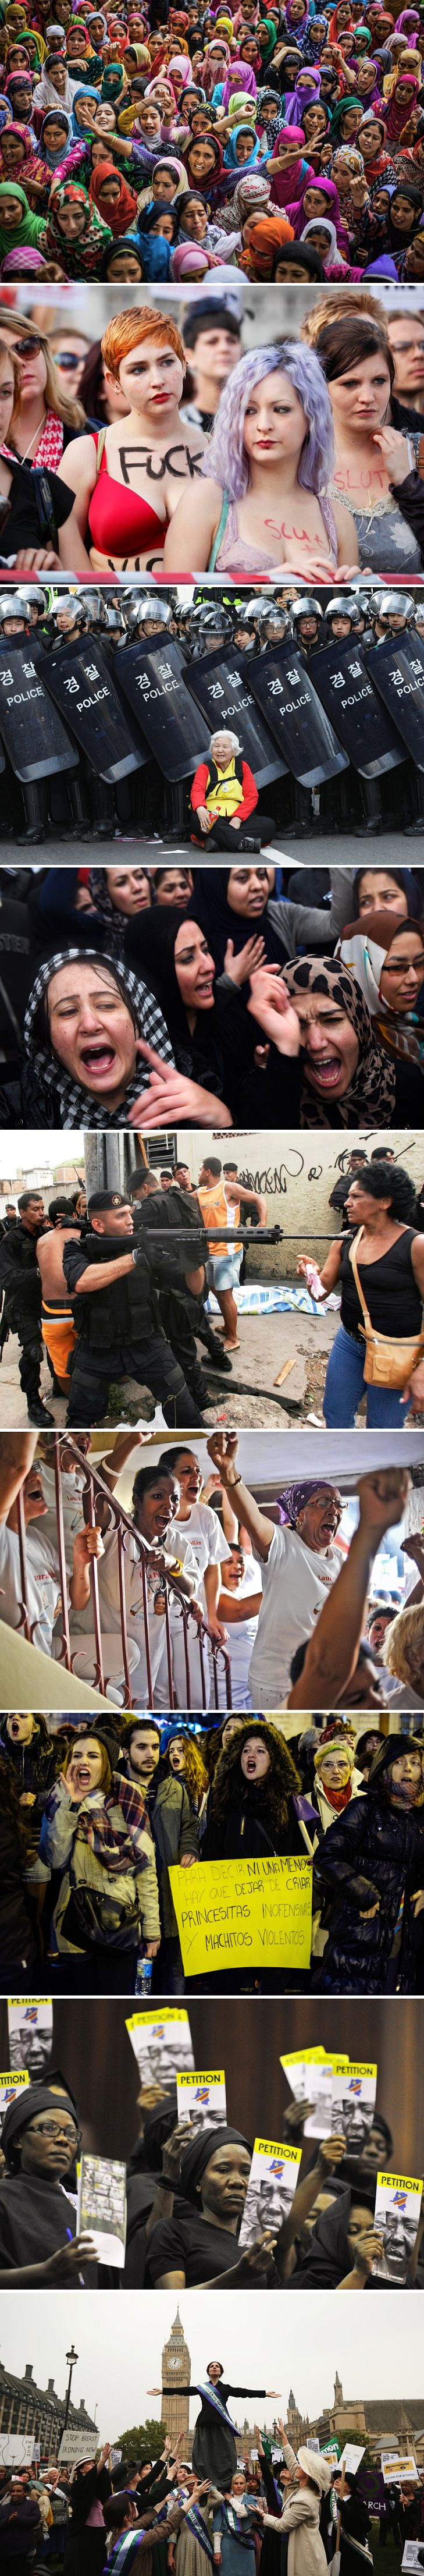 """The Huffington Post: """"60 Stunning Photos Of Women Protesting Around The World"""""""